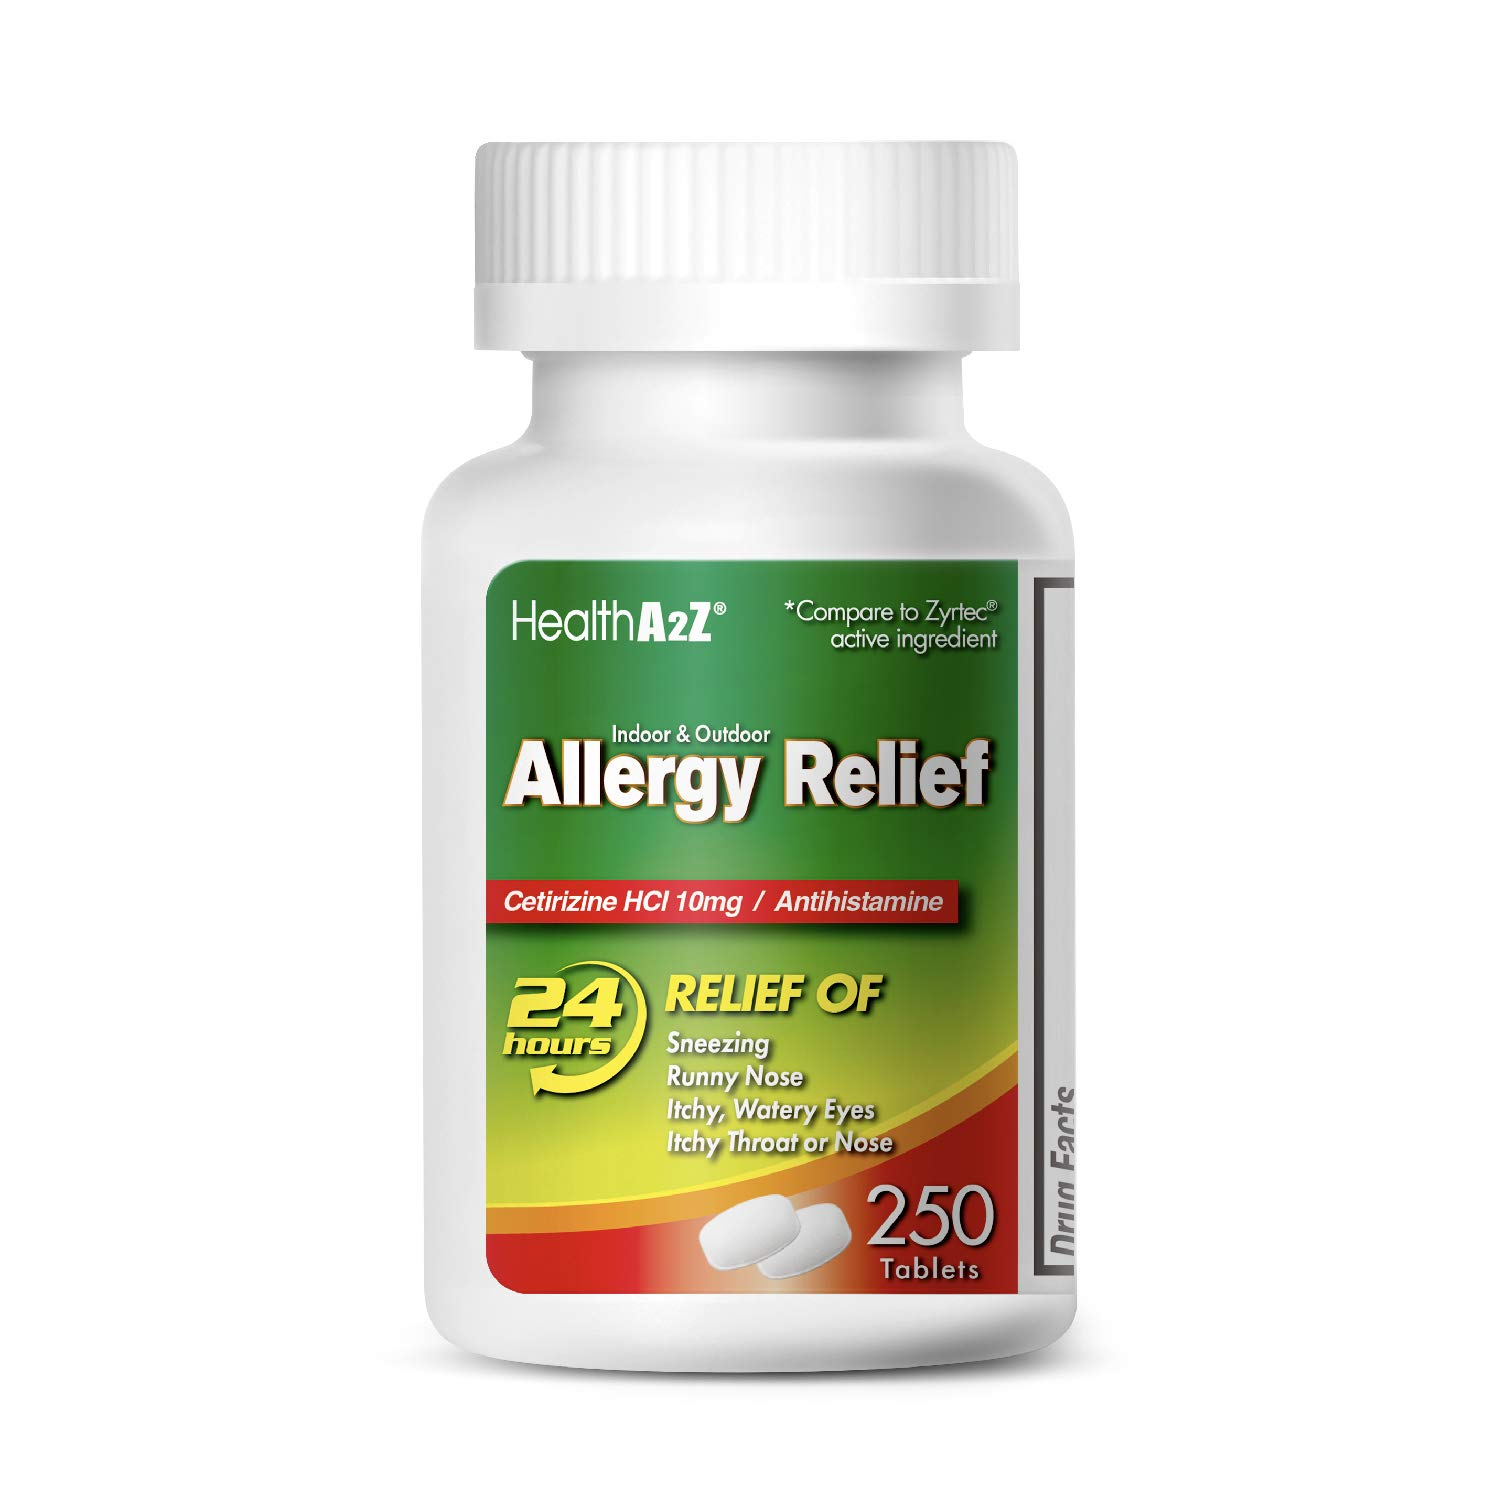 HealthA2Z Allergy Relief, Cetirizine HCL 10mg, 250 Count Compare to Zyrtec® Active Ingredient. by HealthA2Z